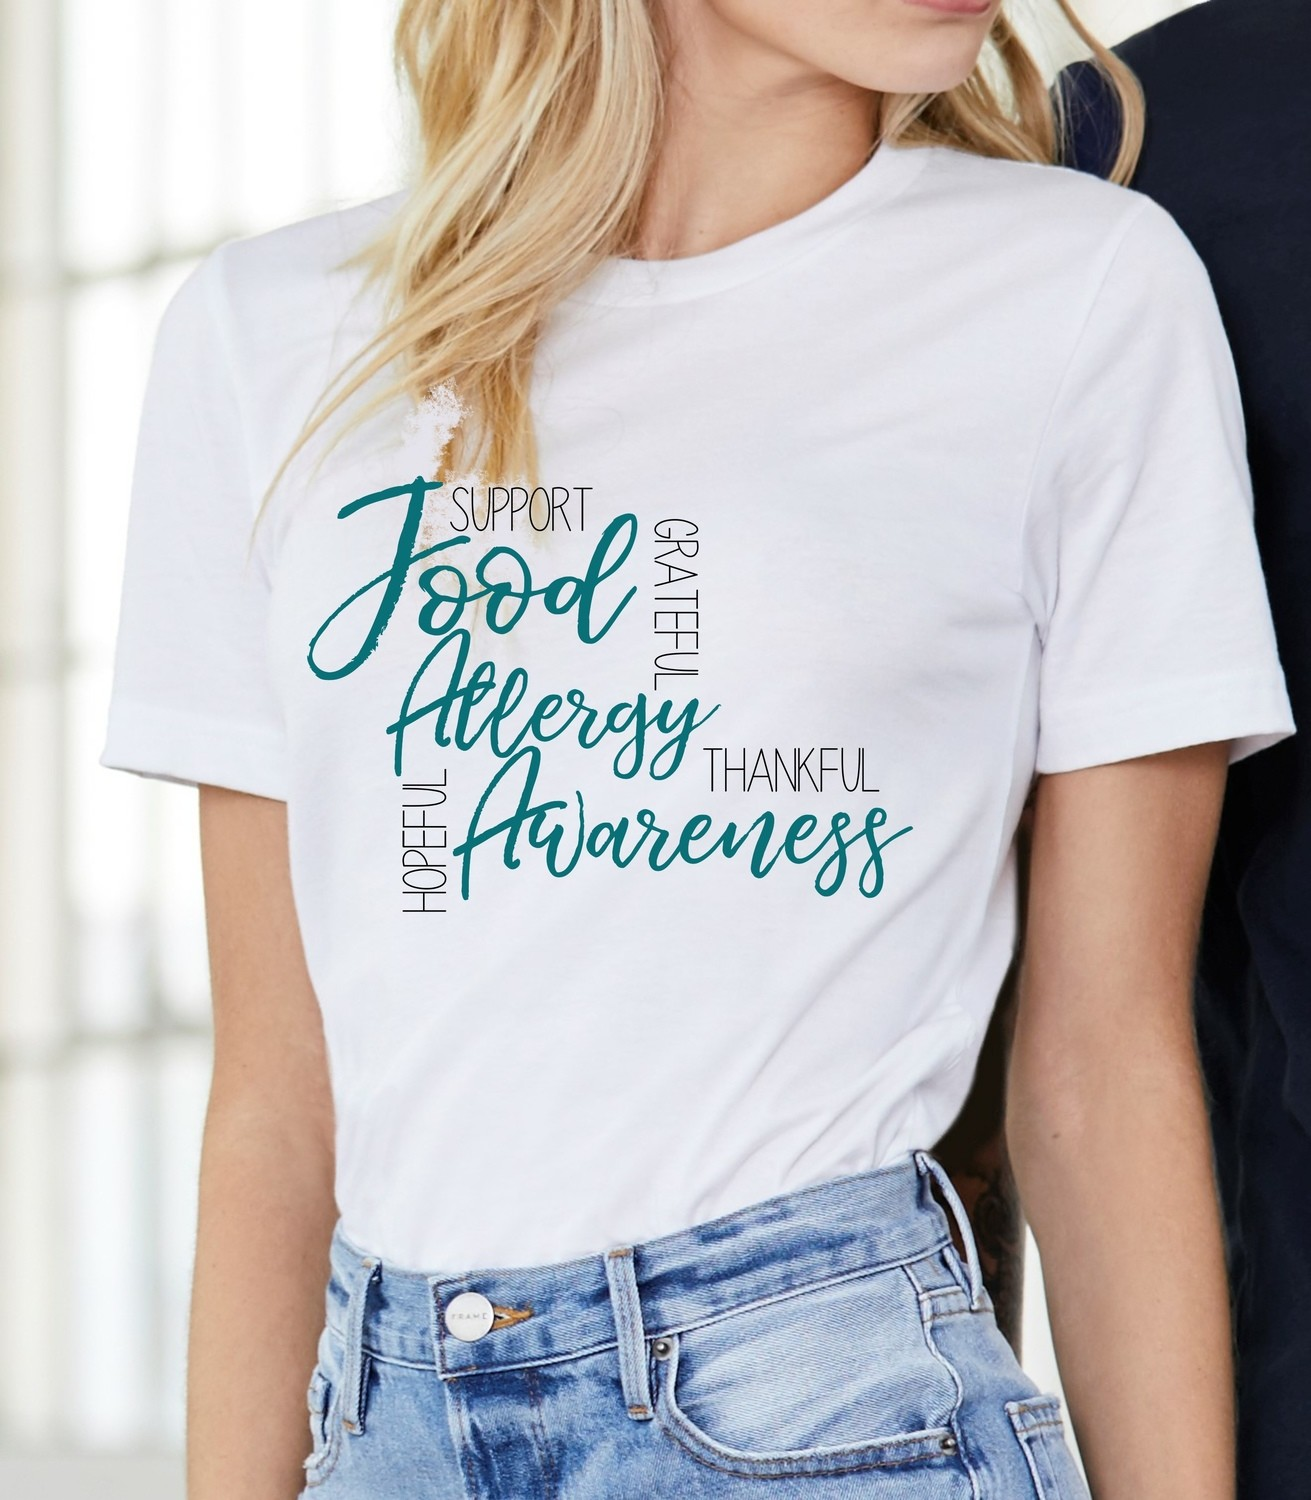 Food Allergy Awareness (Grateful, Hopeful, Thankful)